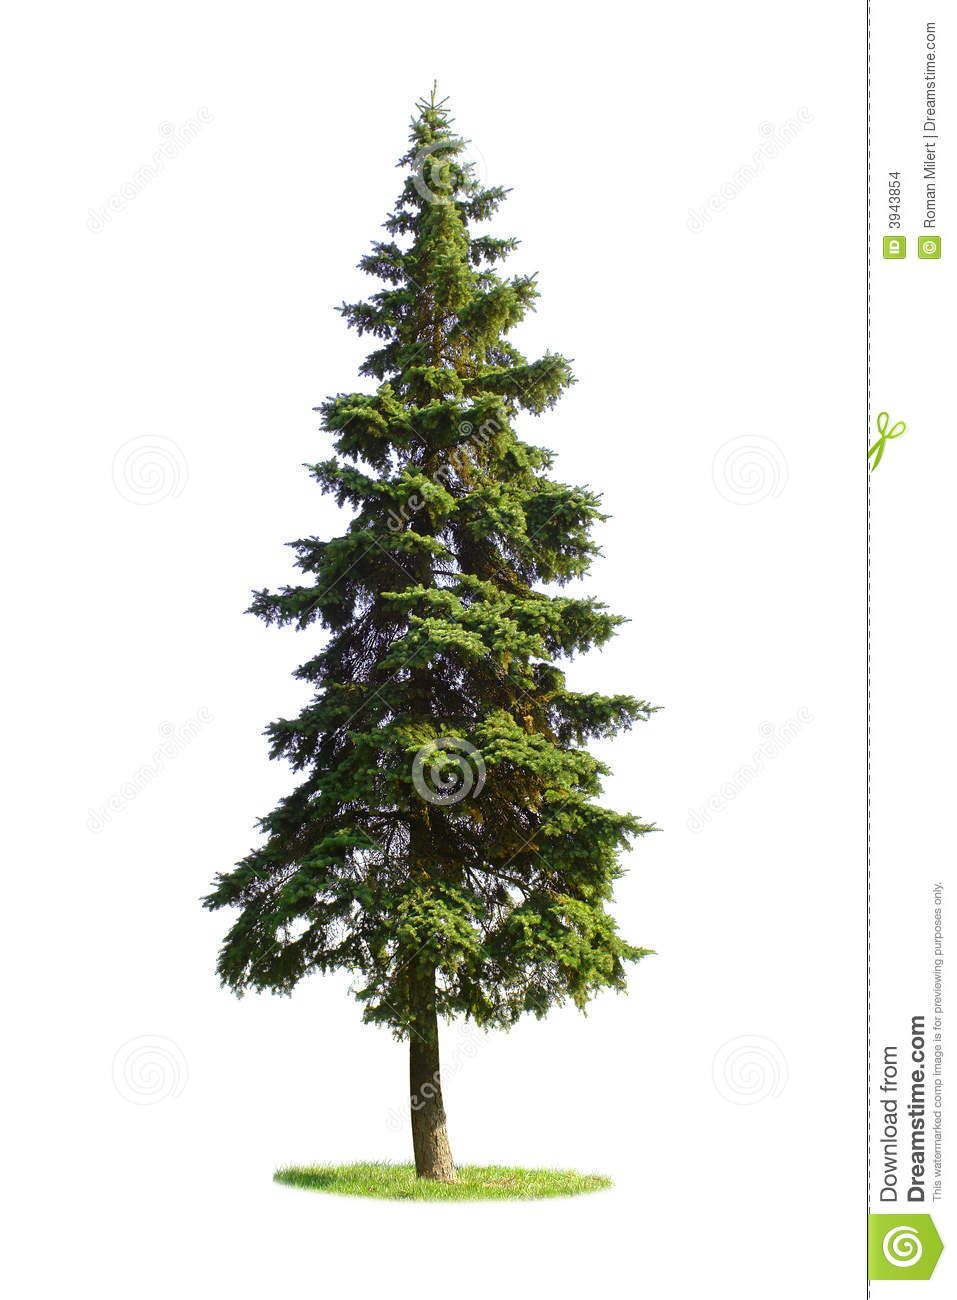 Spruce trees google search pencil drawings pinterest spruce trees google search pencil drawings pinterest spruce tree biocorpaavc Image collections